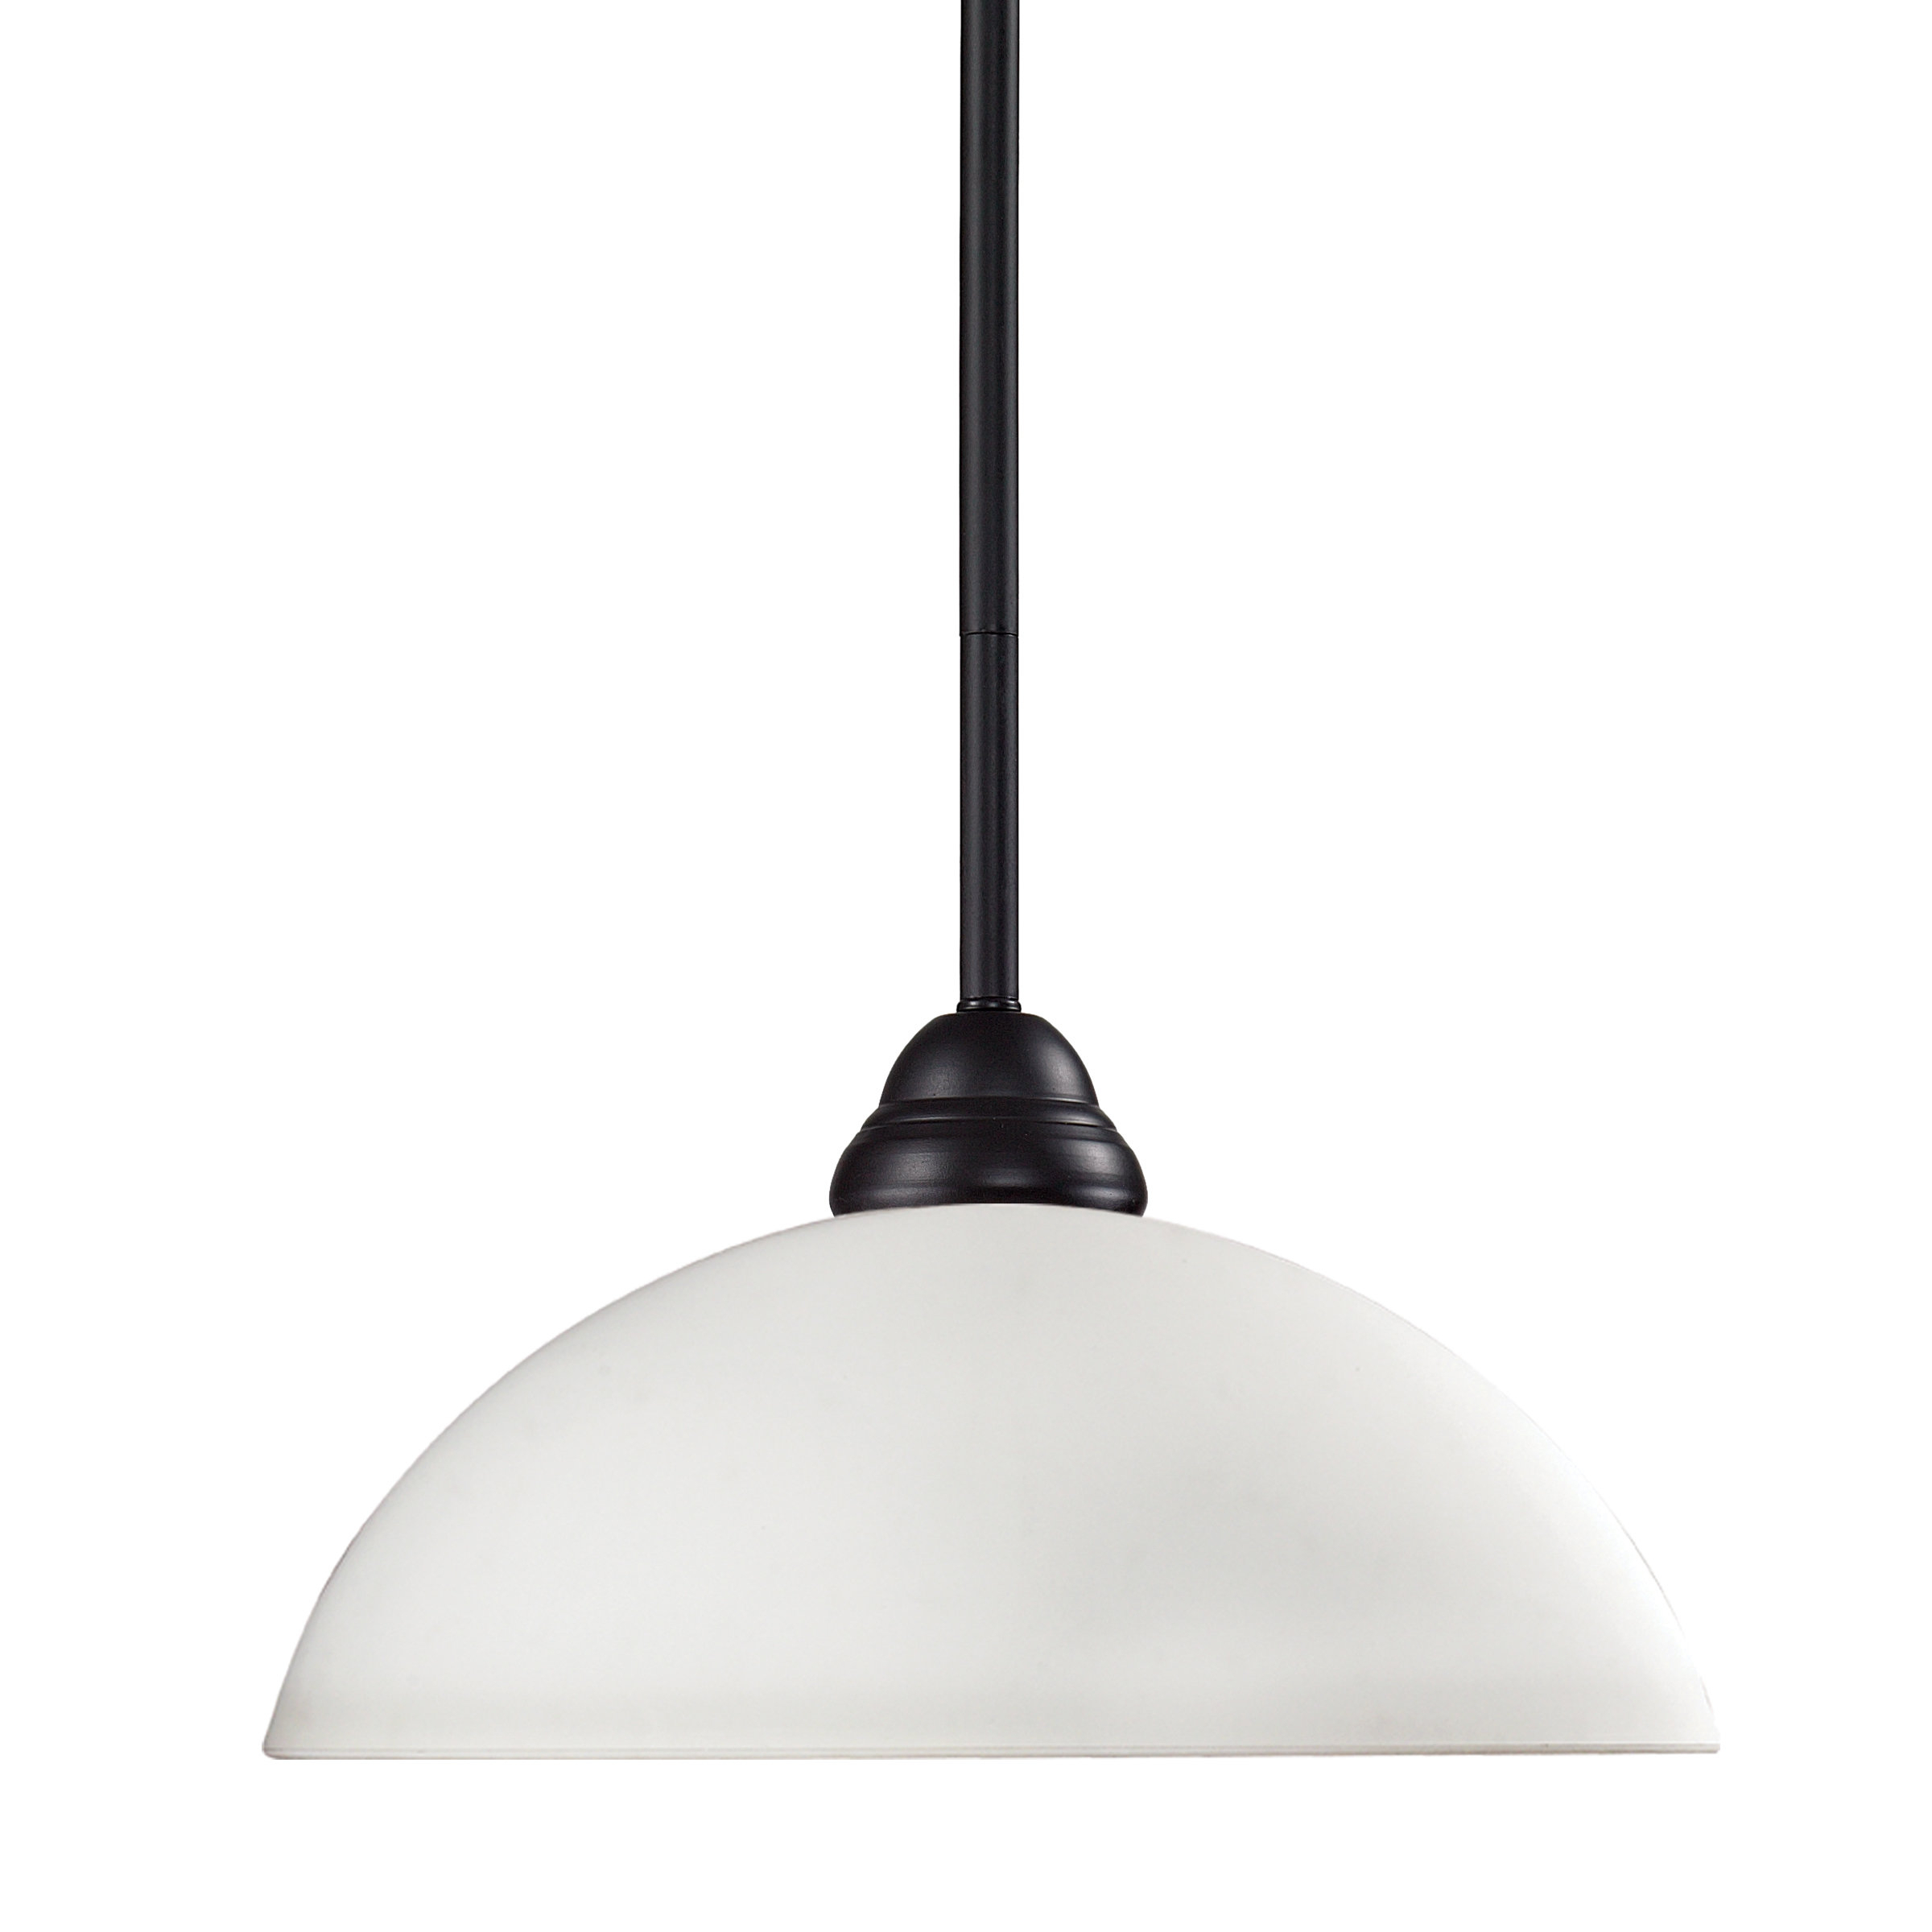 Brynlee 1-Light Single Dome Pendant with regard to Southlake 1-Light Single Dome Pendants (Image 10 of 30)